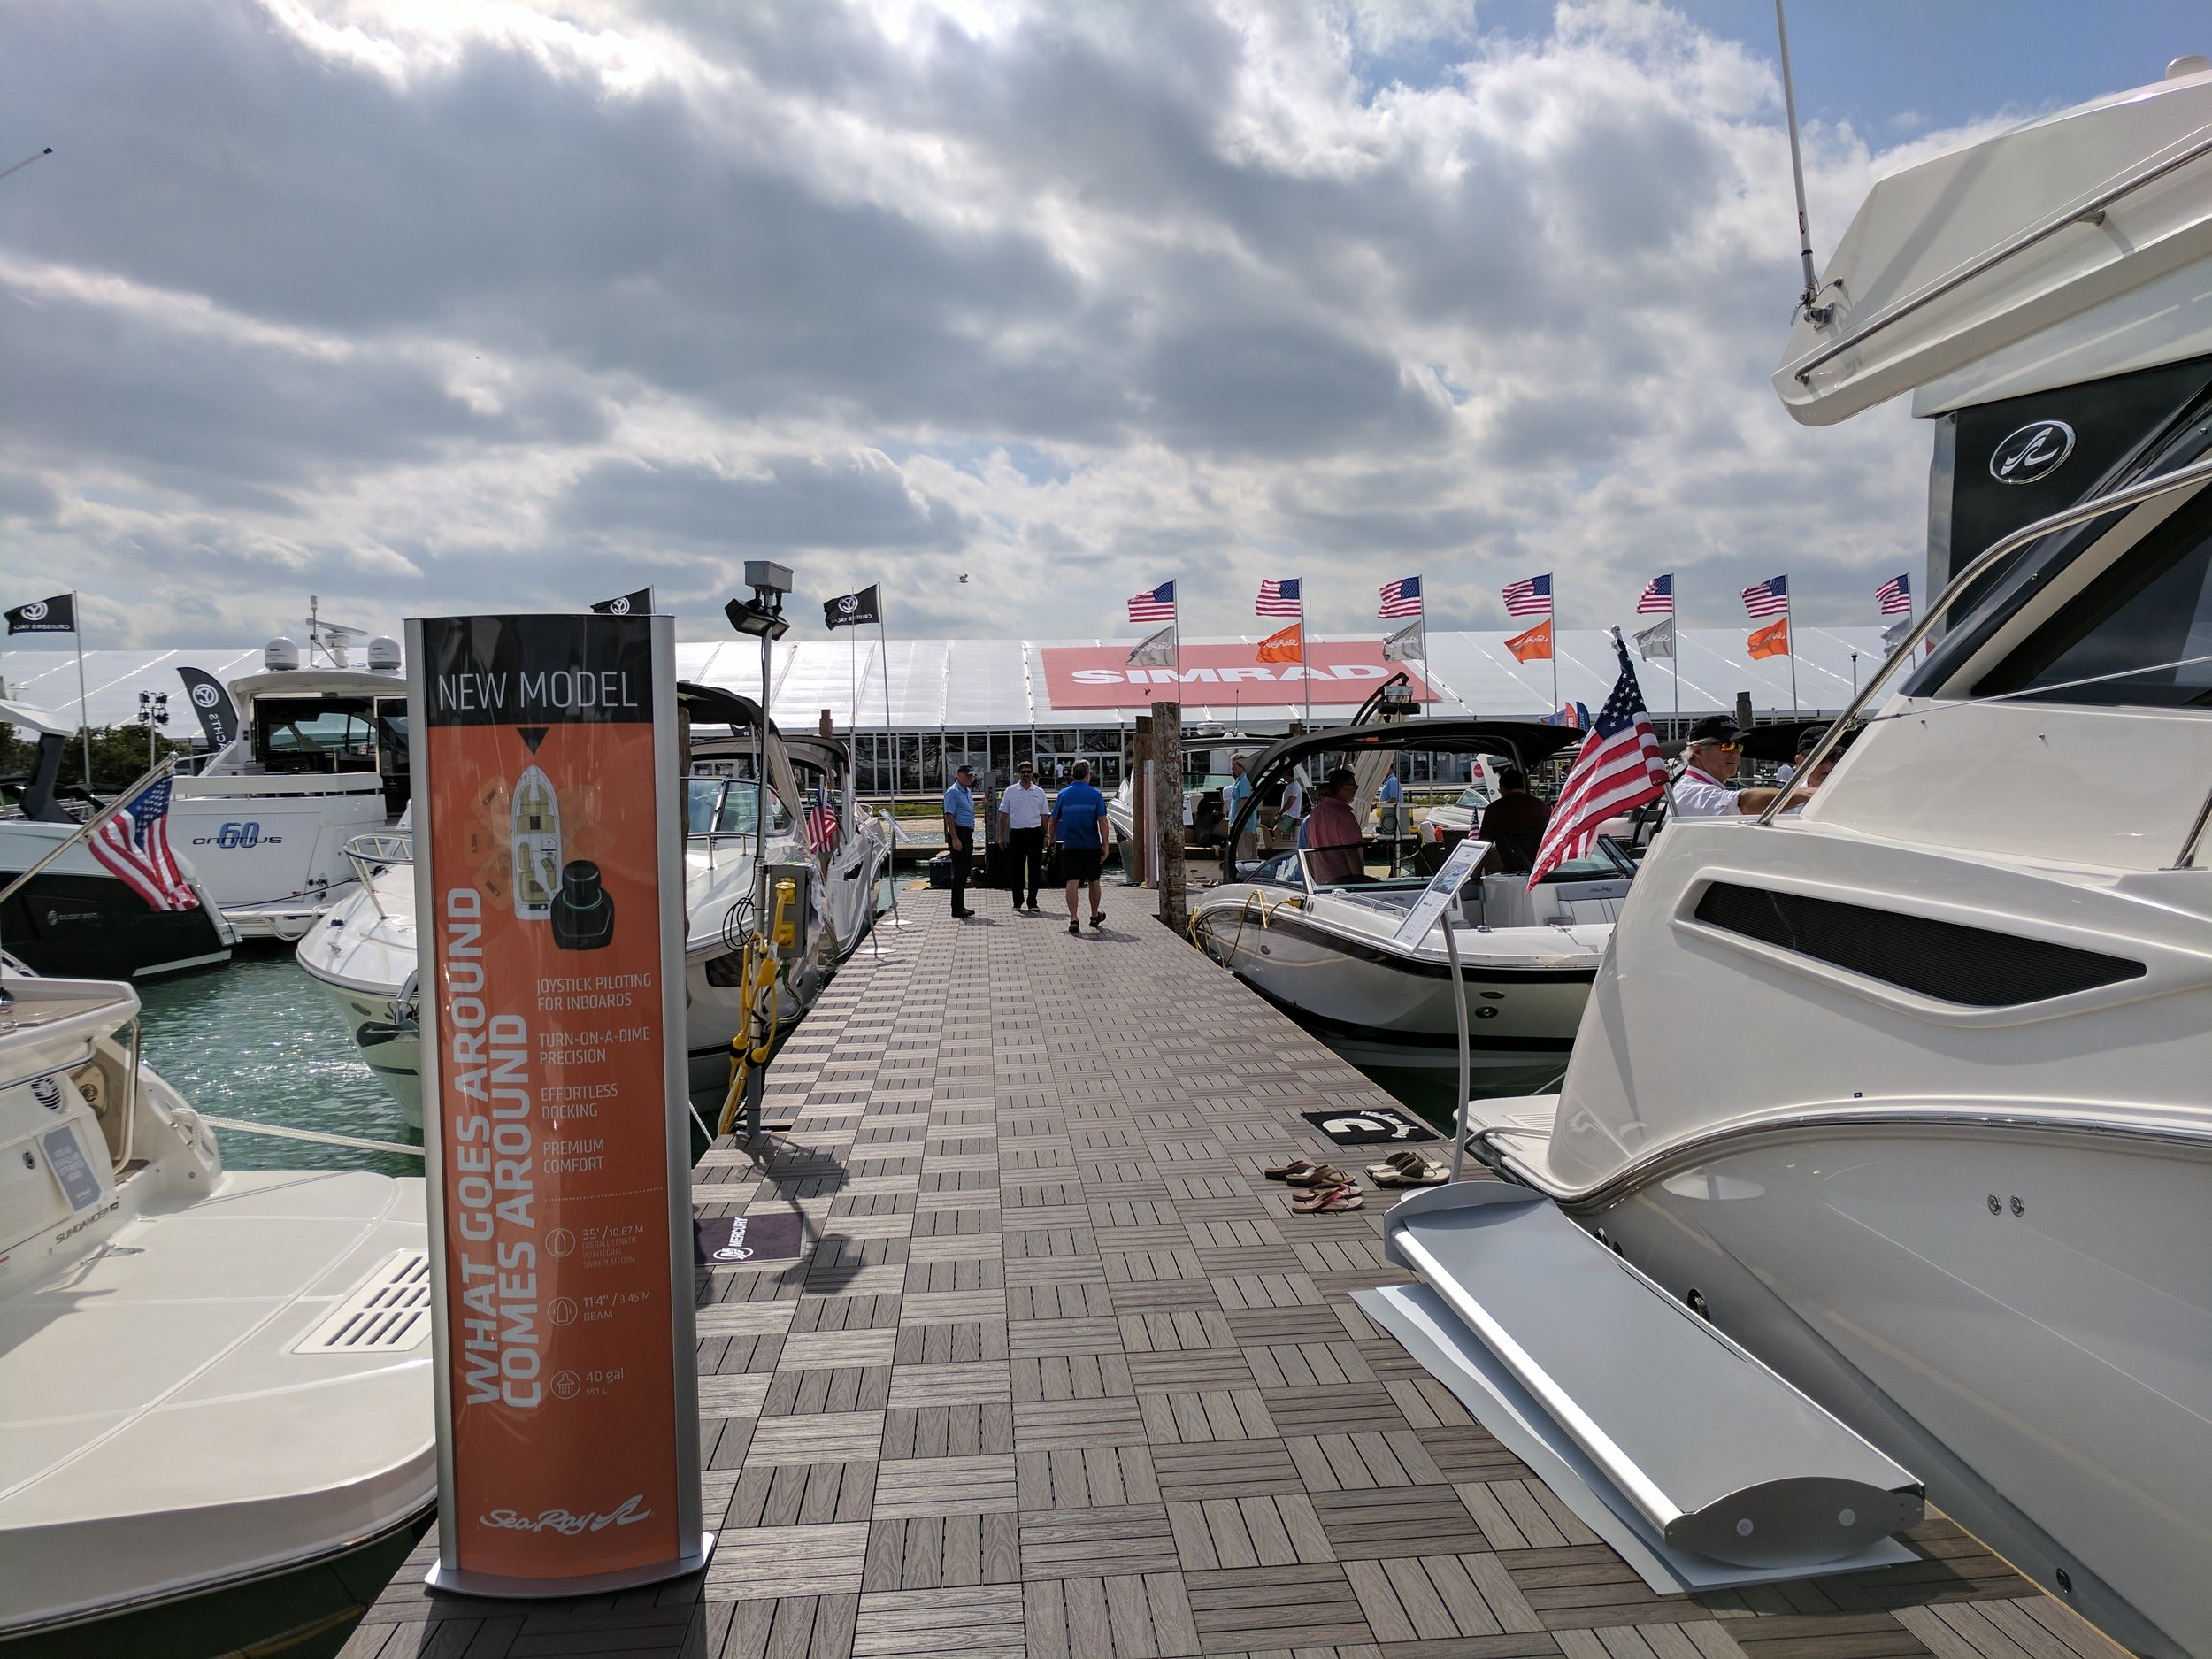 The Miami International Boat Show is one of the best boat shows in North America for the number of exhibitors and the range of boats. Great product launches happen in Miami.